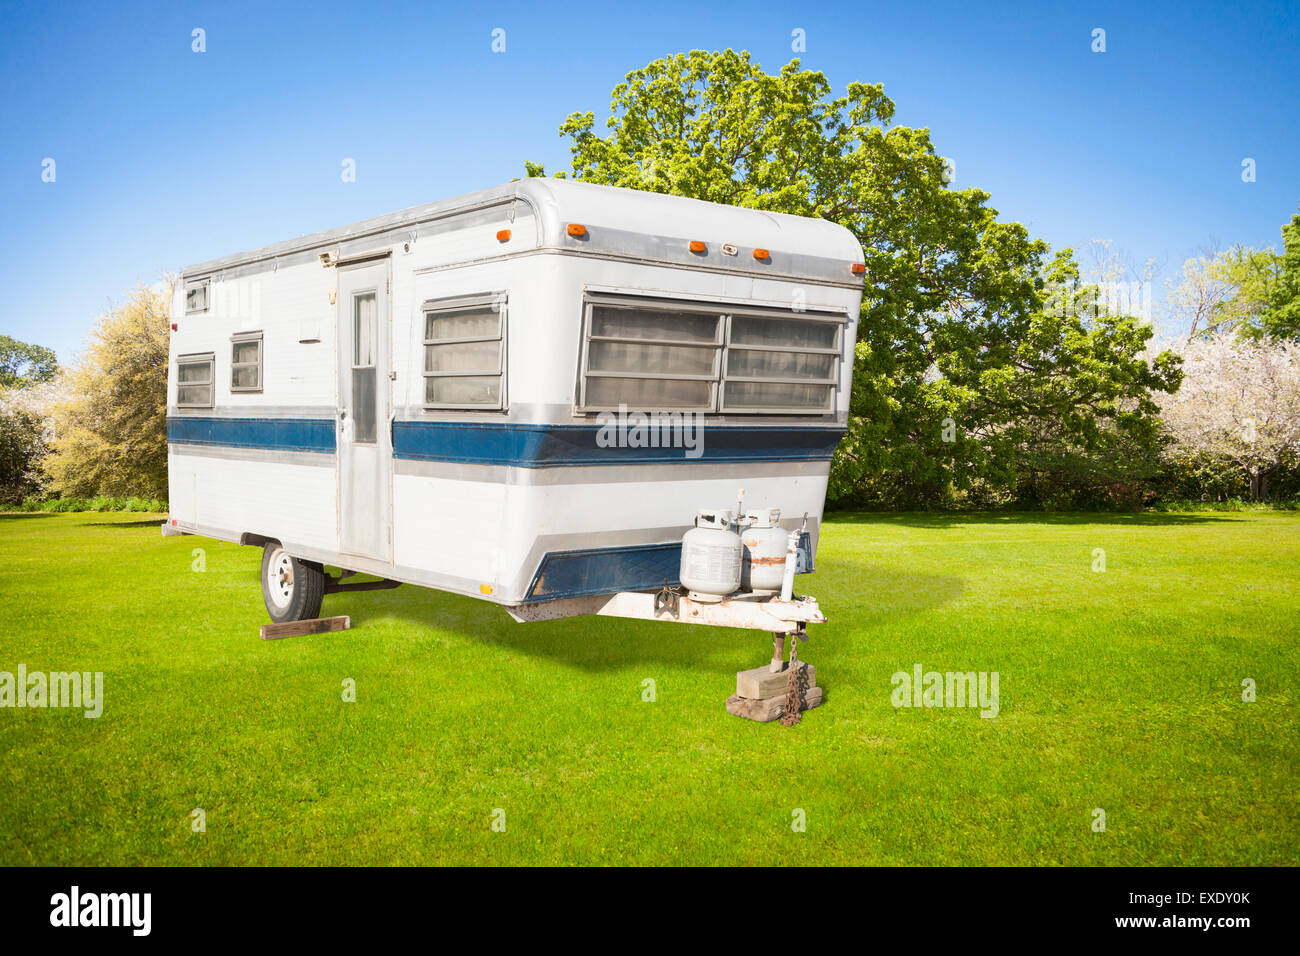 Classic Old Camper Trailer In Grass Field With Beautiful